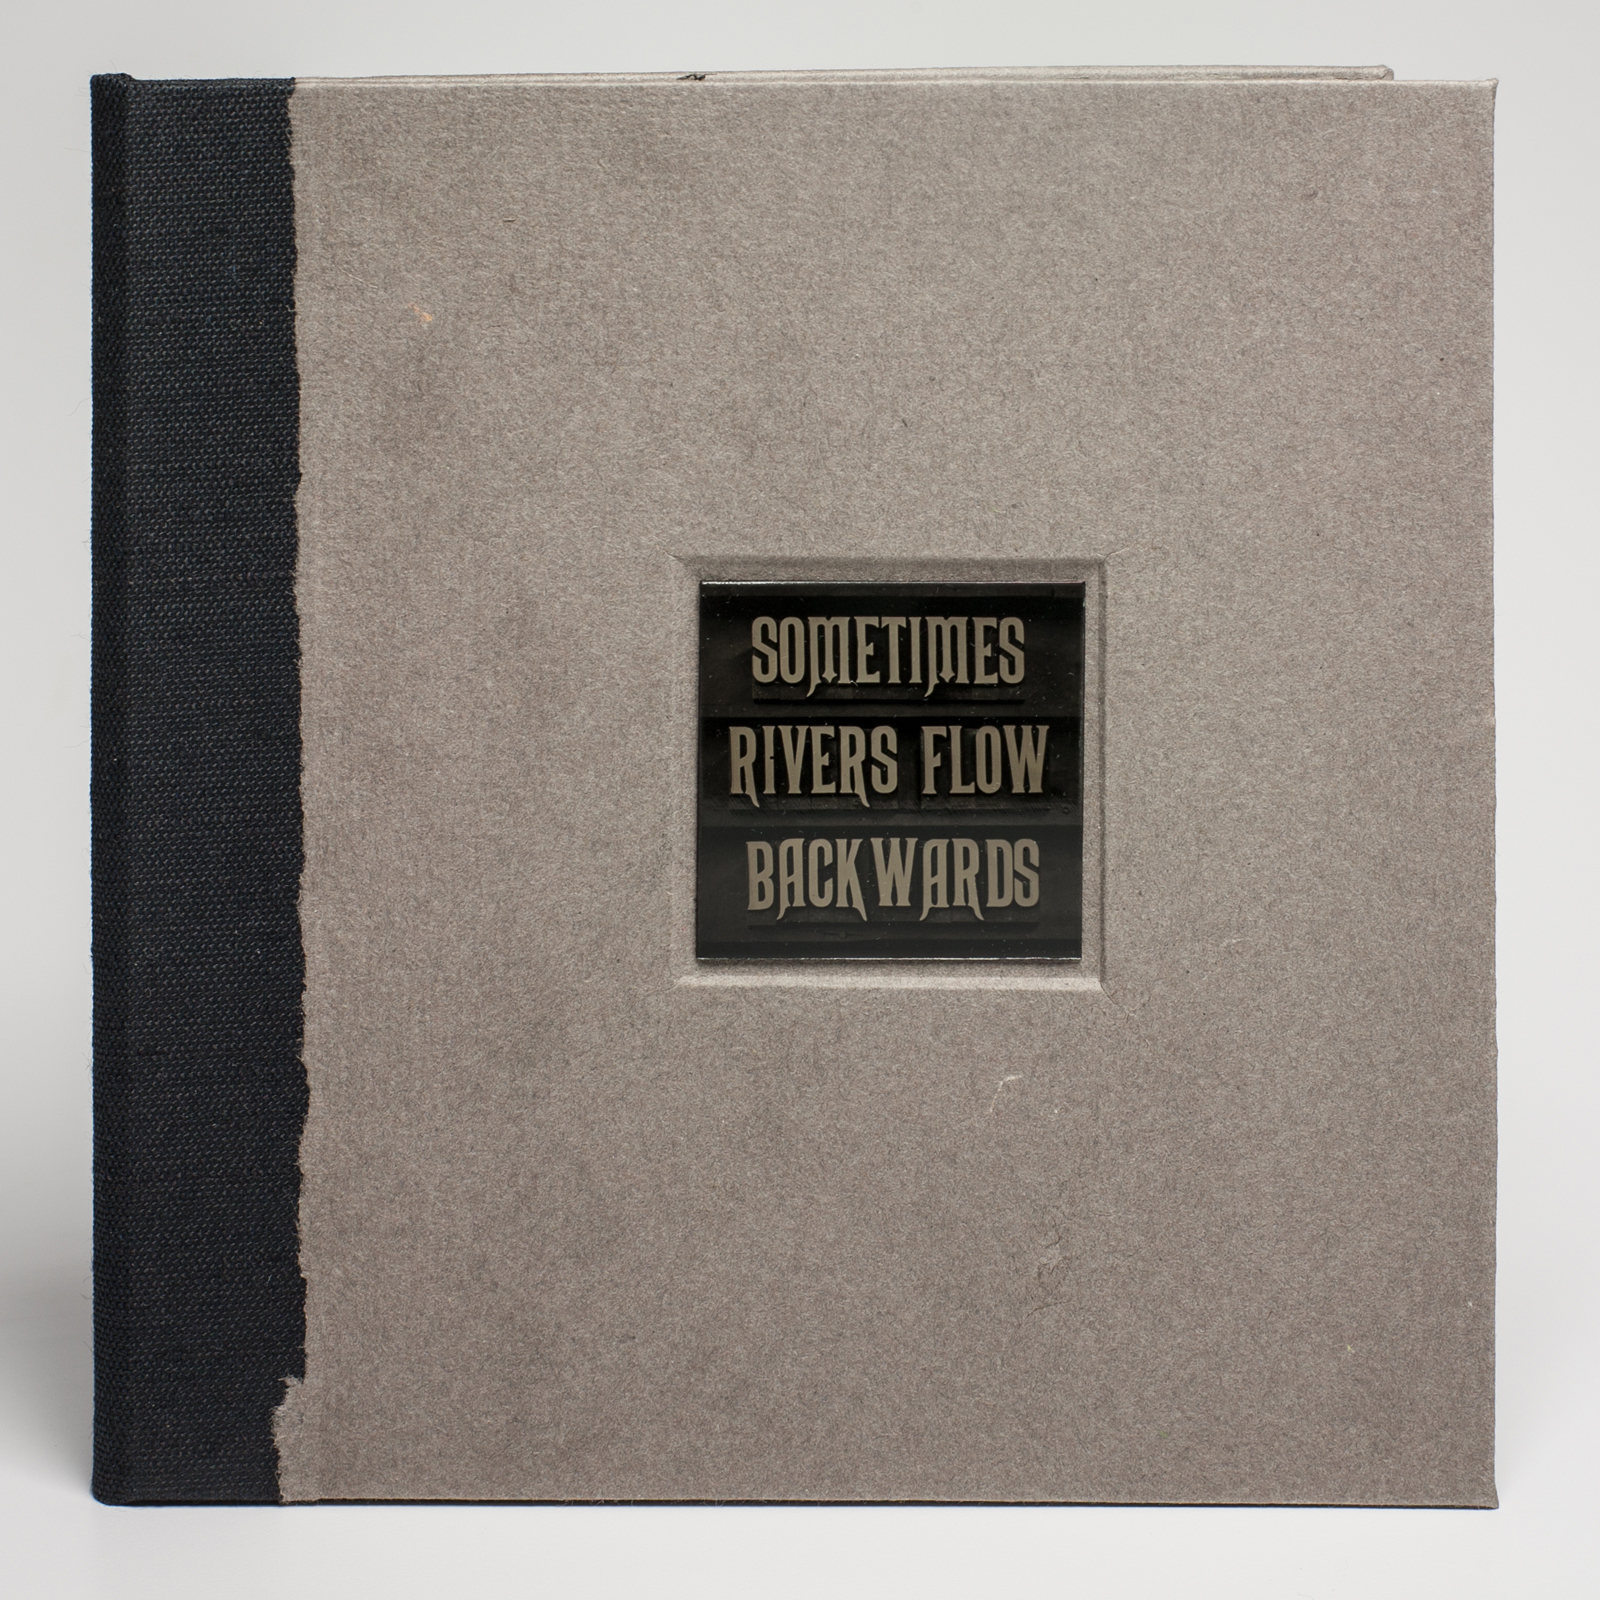 Sometimes Rivers Flow Backwards  - Cover - Inset tintype of letterpress type - 2014